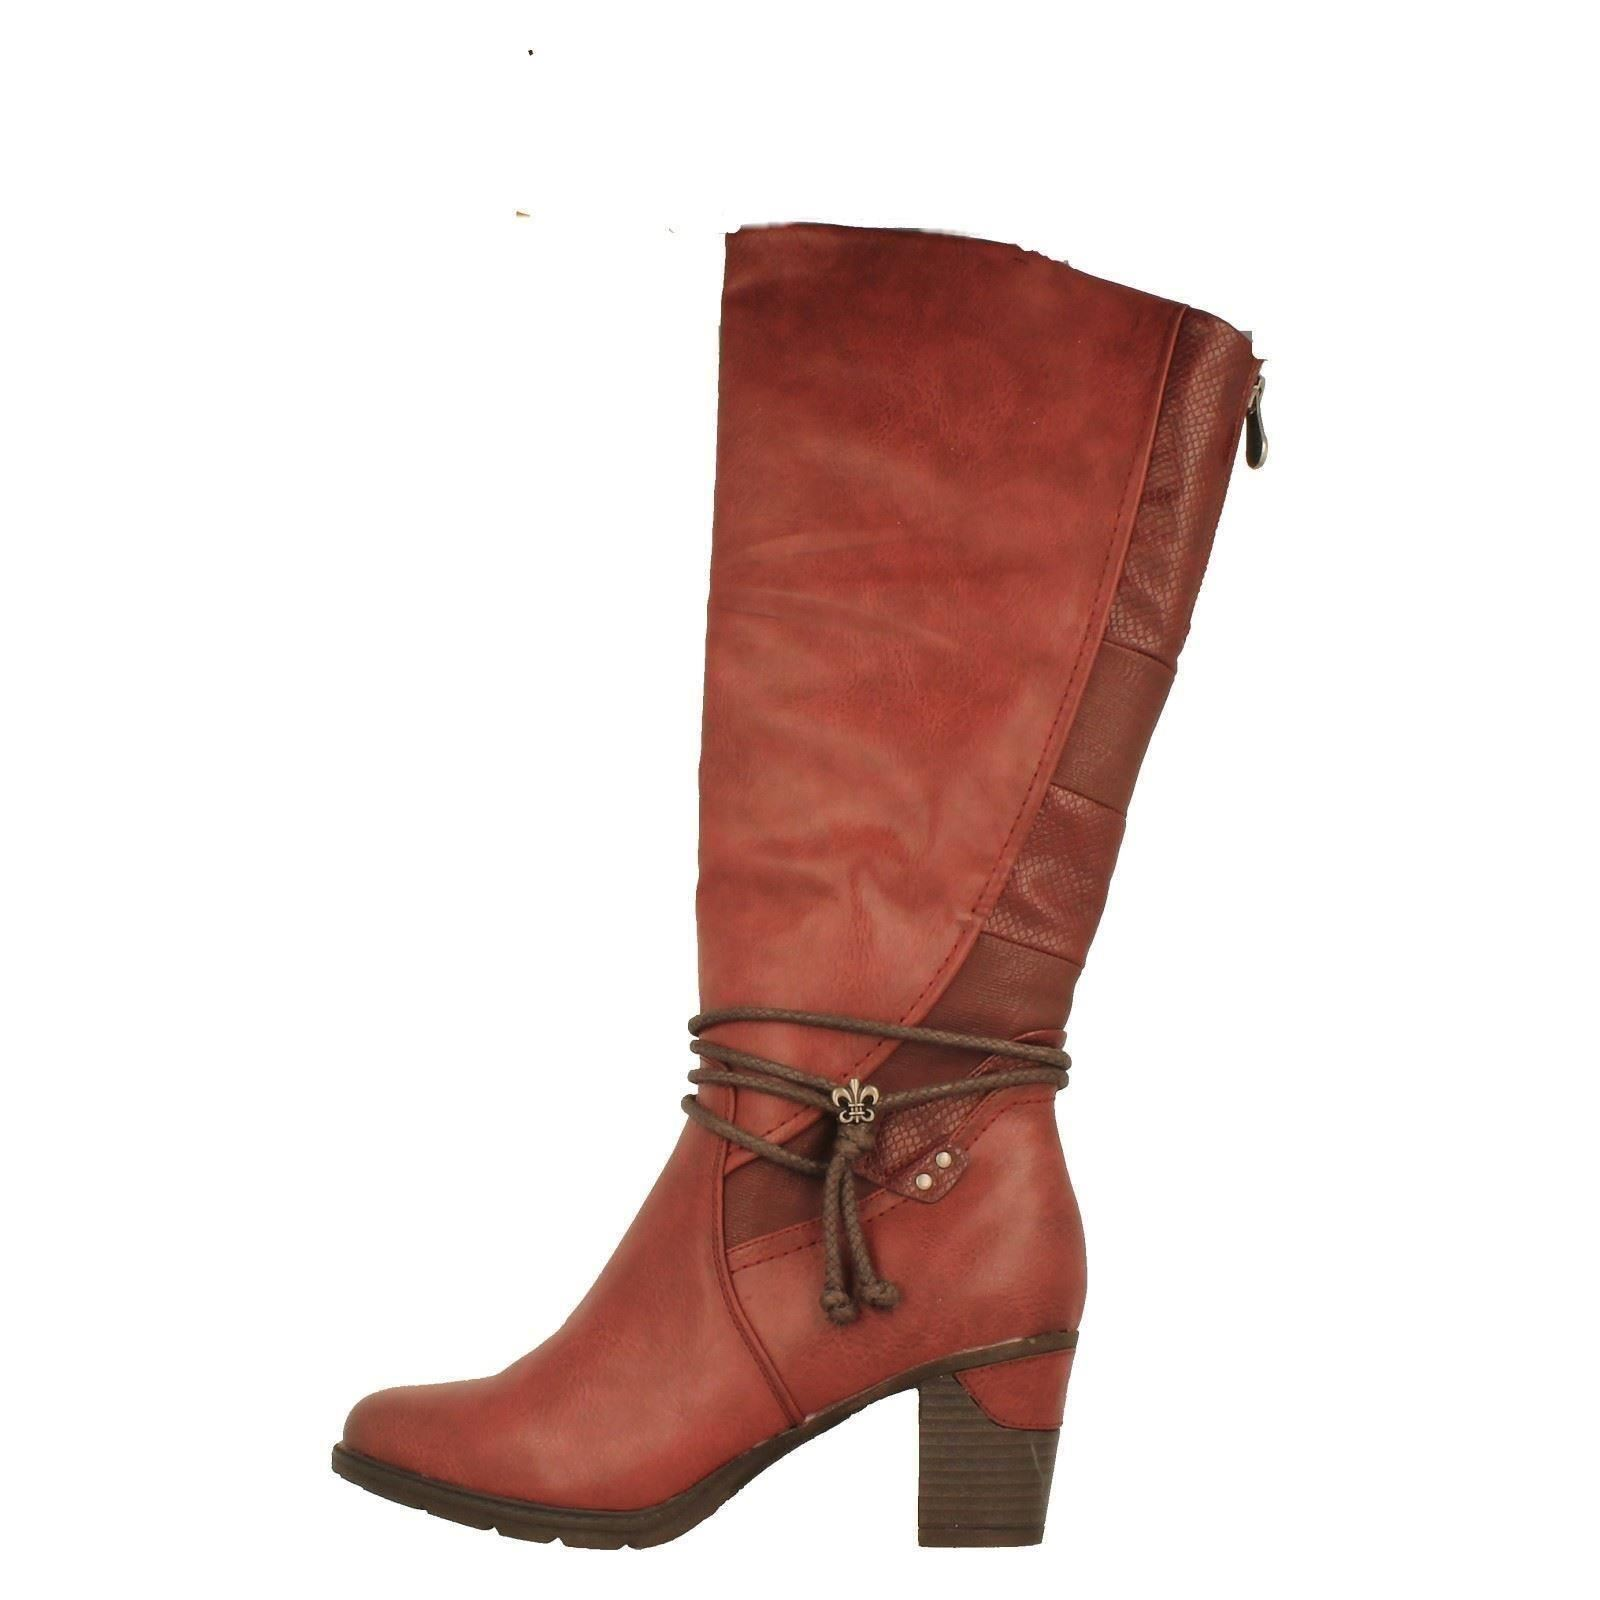 europegamexma.gq is your source for boots, boots & more boots! From over the knee and thigh boots to motorcycle and riding boots, you don't want to miss this. Better step on it!